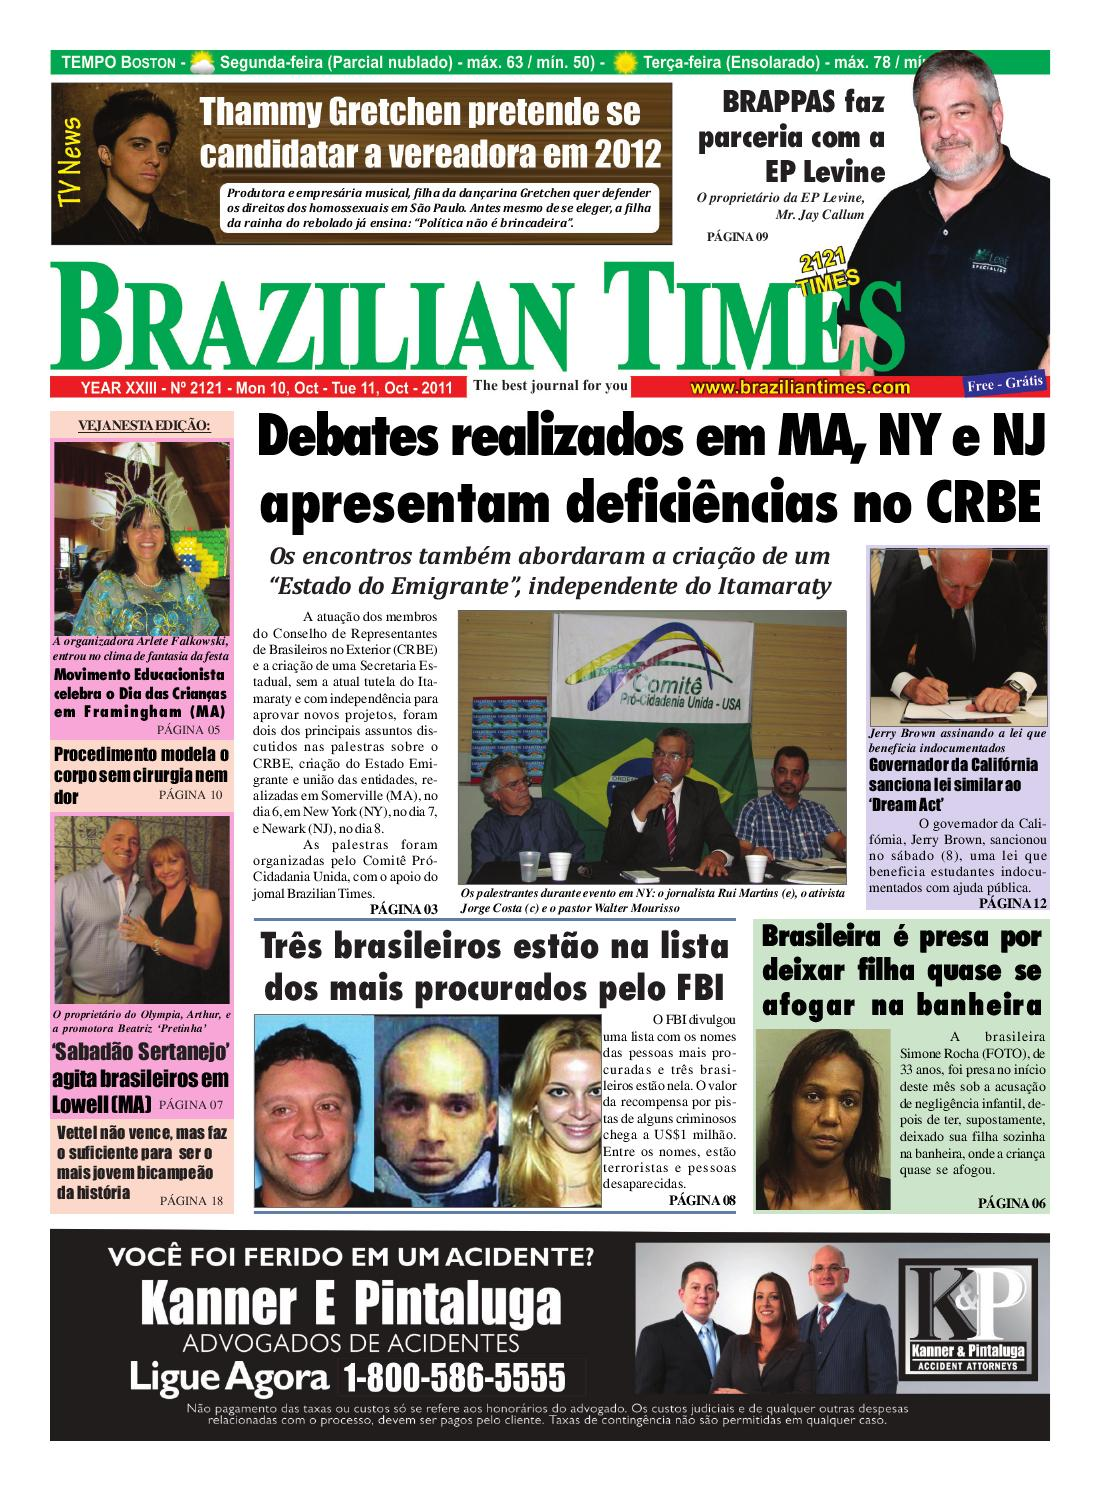 MA 2121 by The Brazilian Times Newspaper - issuu 7e57beb1c7f